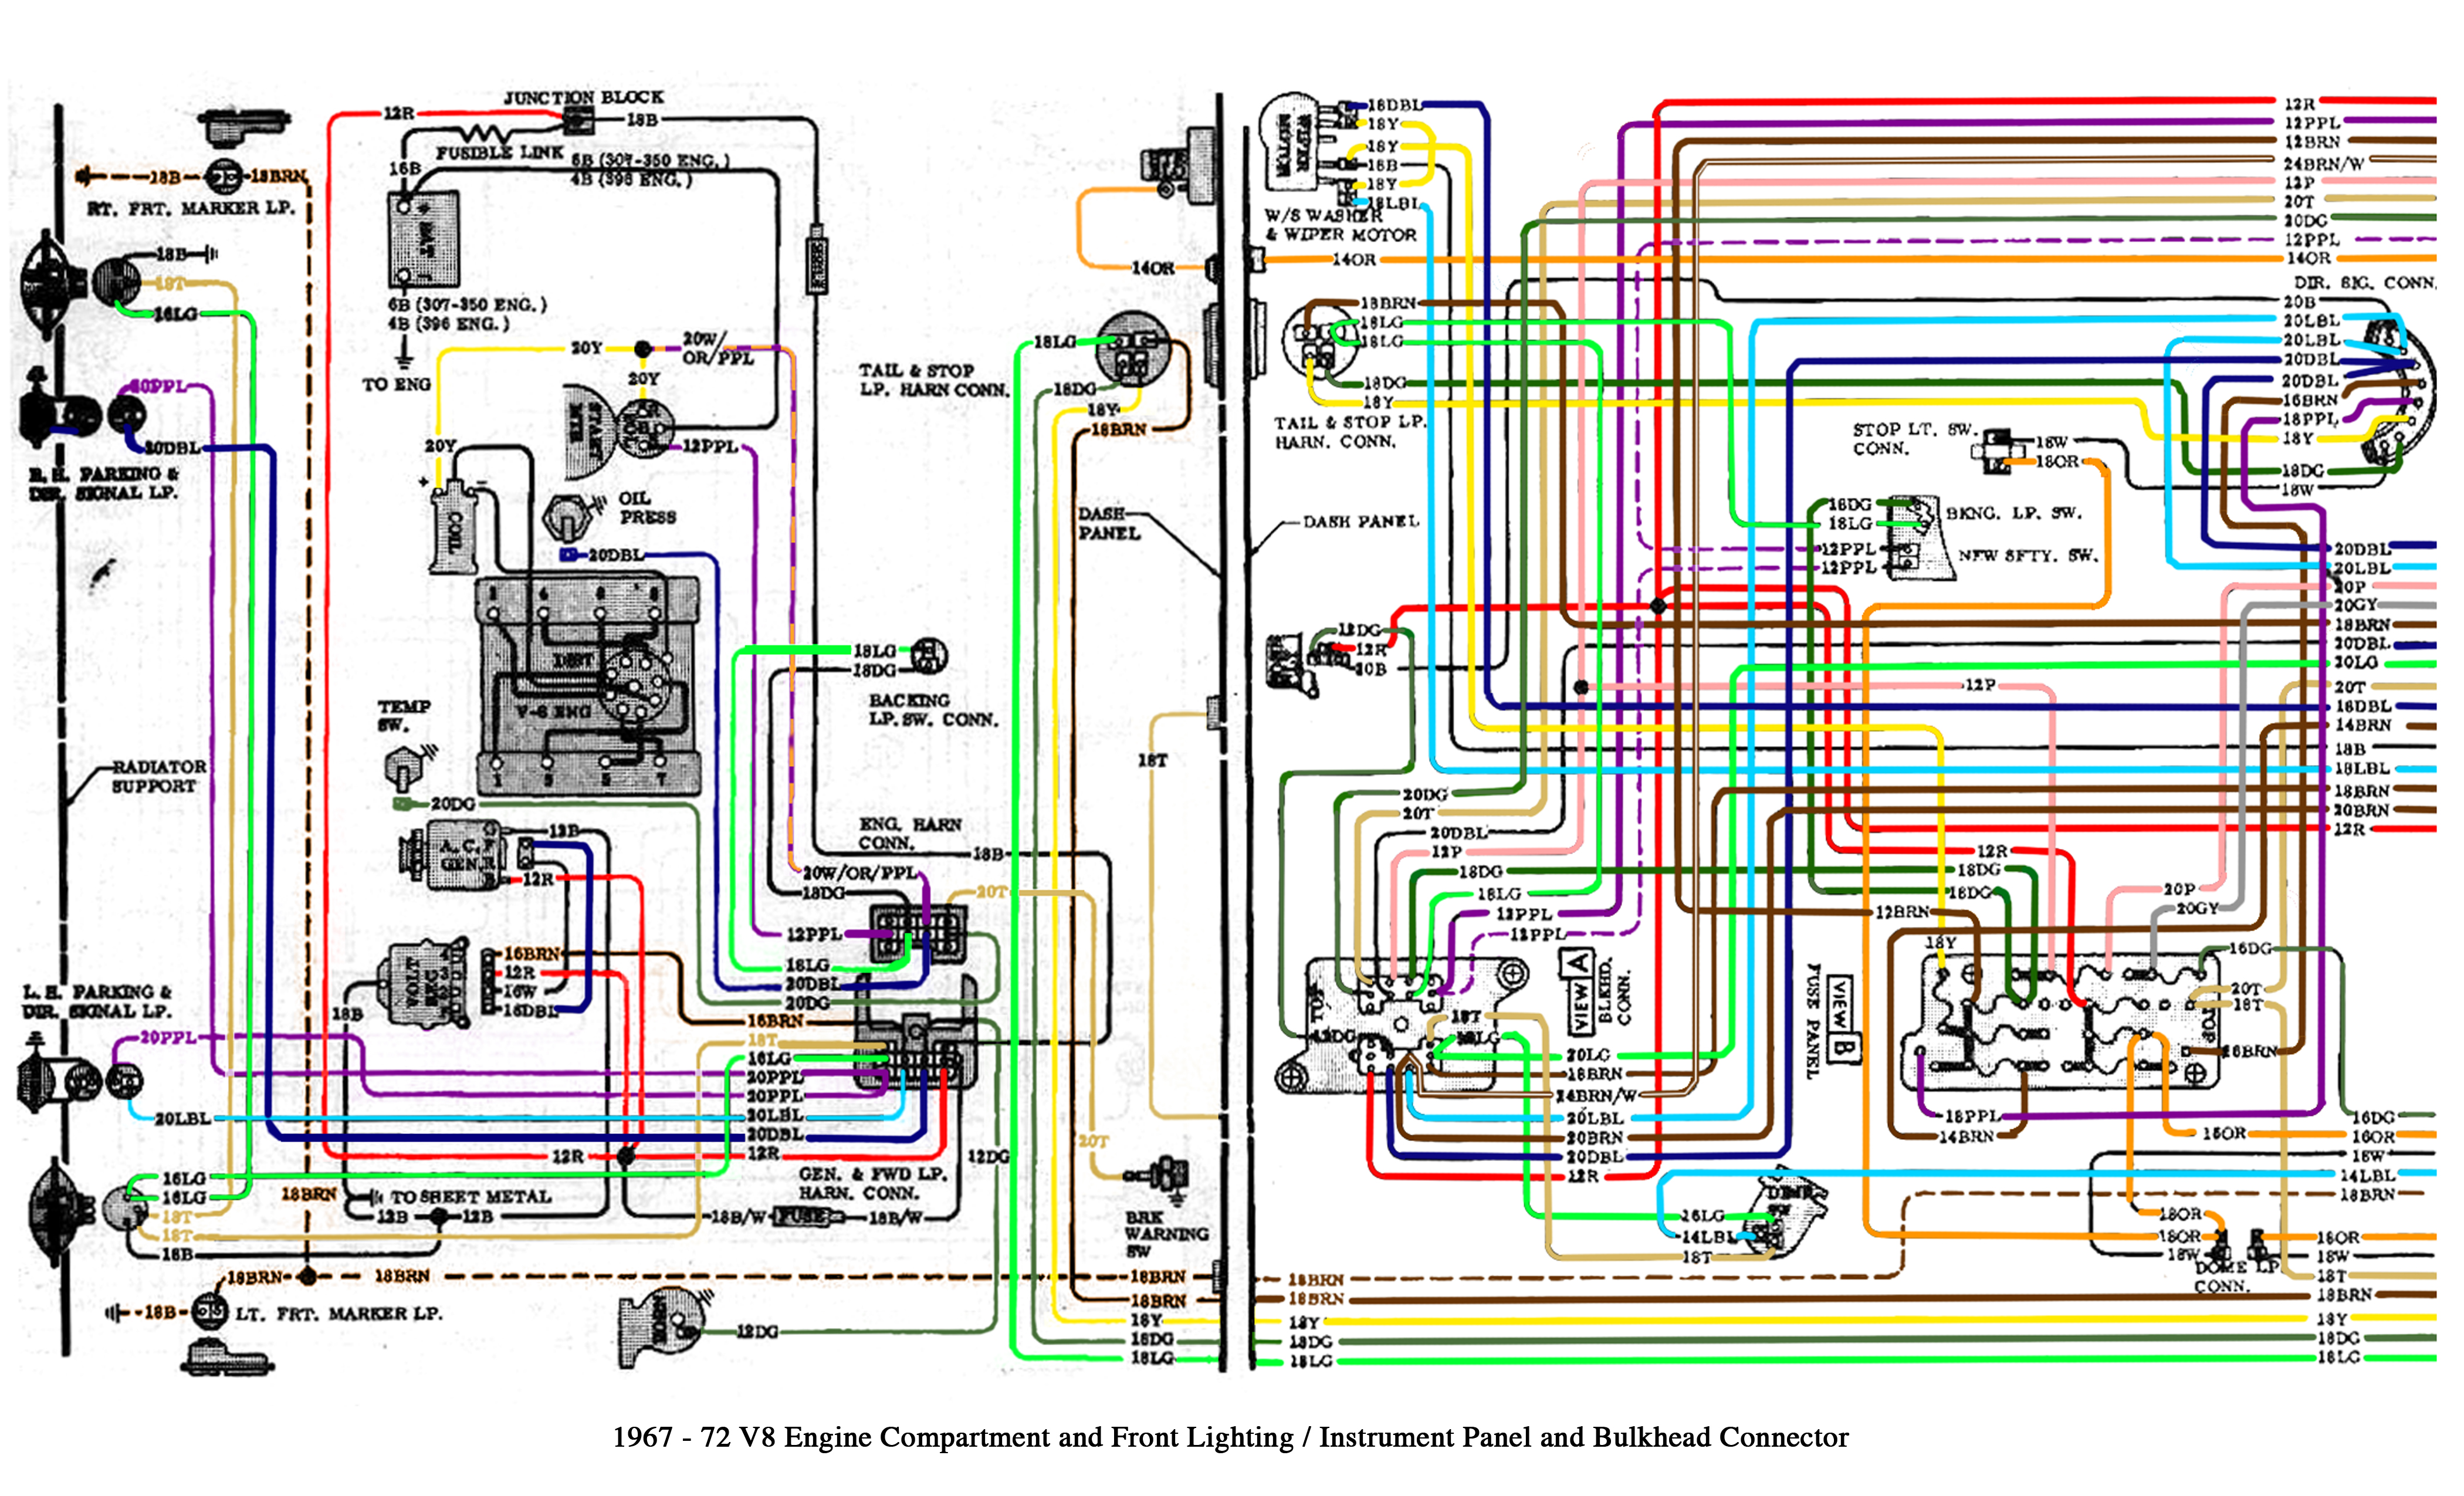 Color Wiring Diagram Finished The 1947 Present Chevrolet & Gmc 1992 Chevy  Blazer Wiring Diagram 1970 Chevy Blazer Wiring Diagram